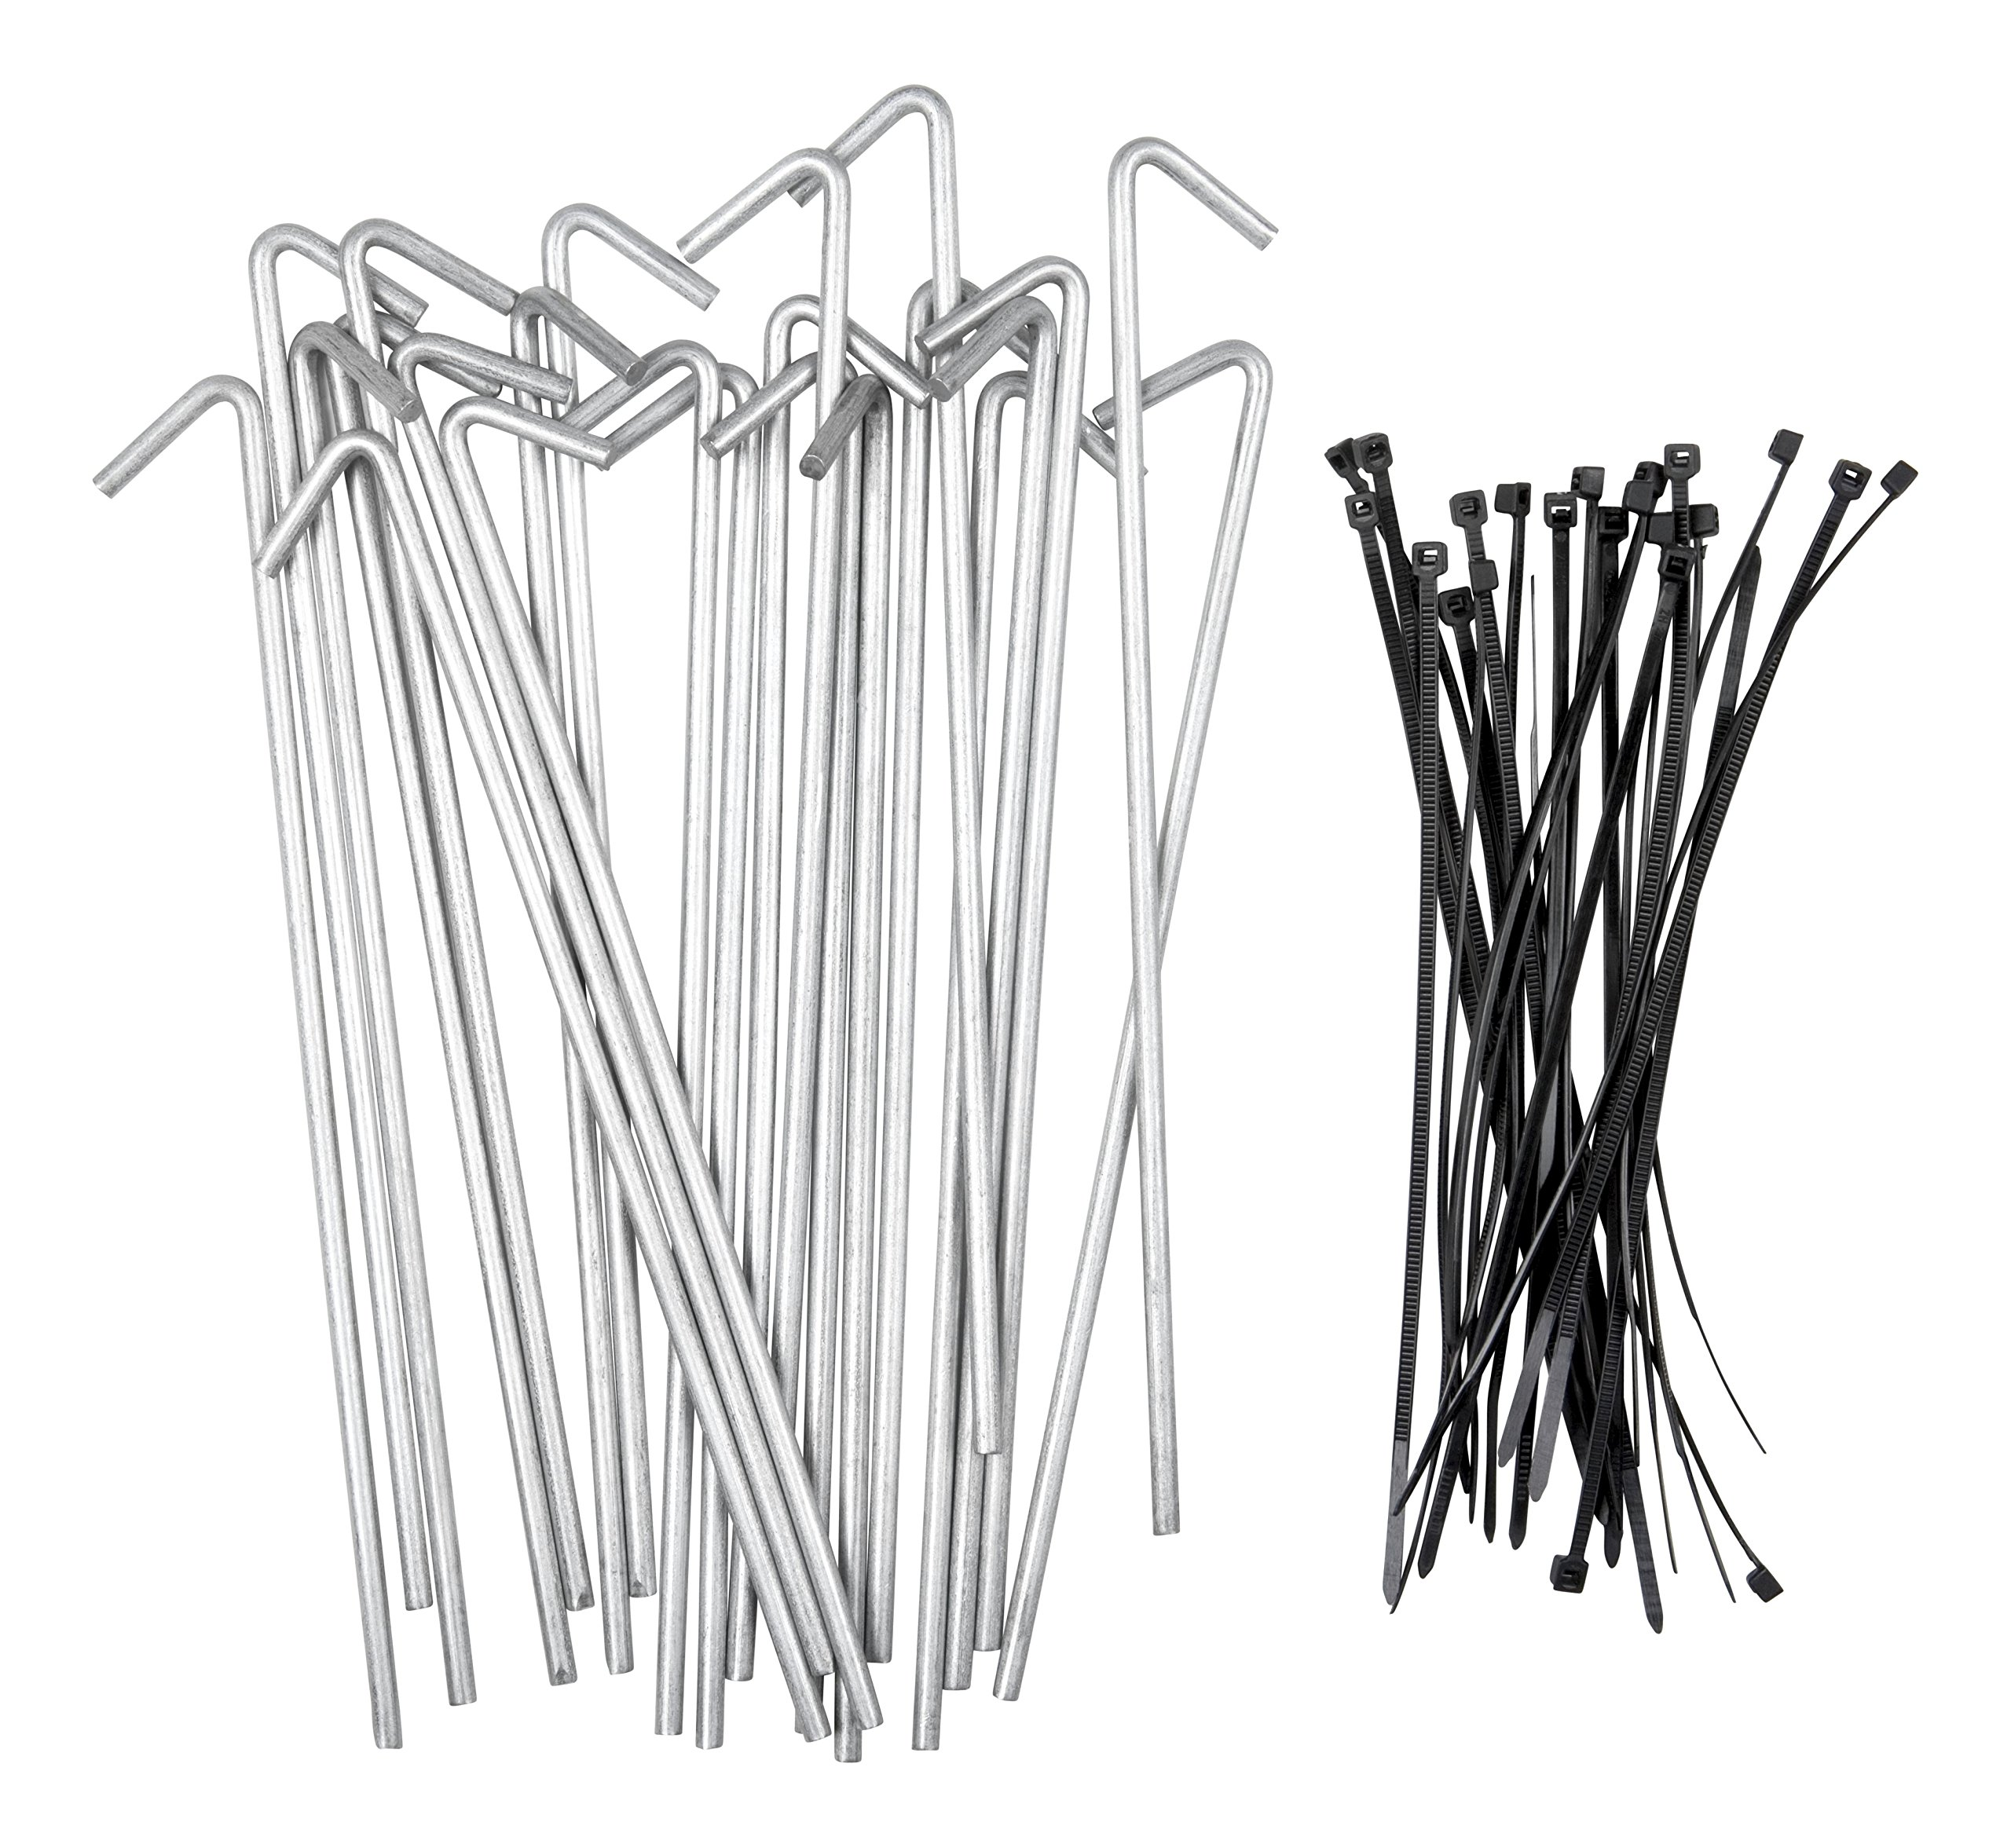 Stepton 50-Pack Galvanized Tent Stakes/Metal Pegs for Anchoring Tents, Landscape Fabric, Tarps, etc. 7.5-Inches Comes with 50 Cable Ties by Stepton